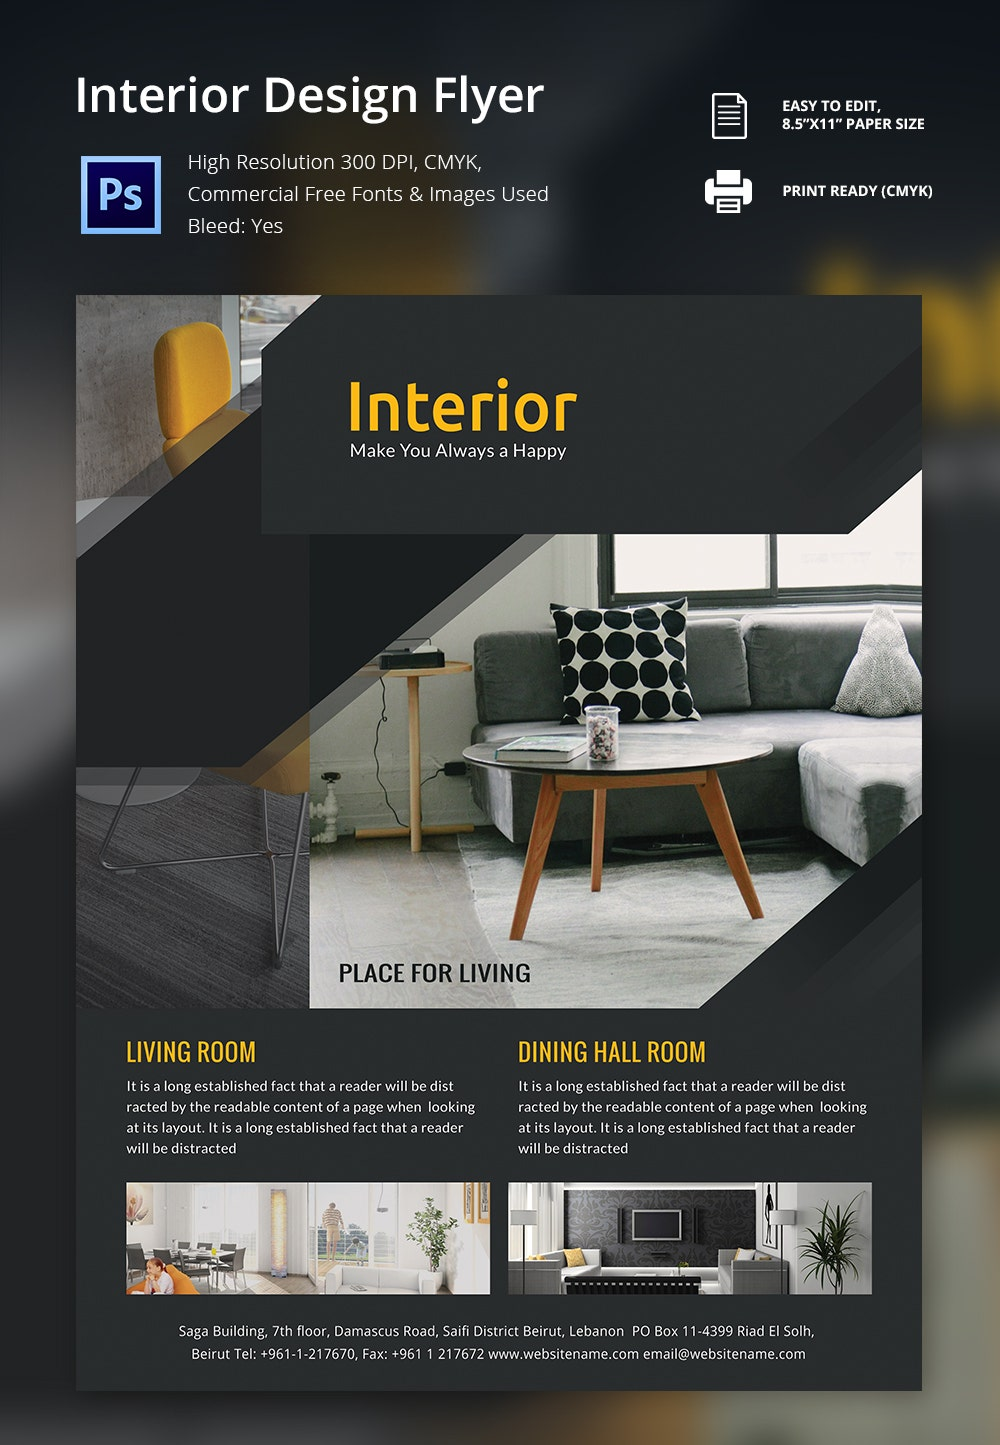 Interior-Design-Flyer-Template1